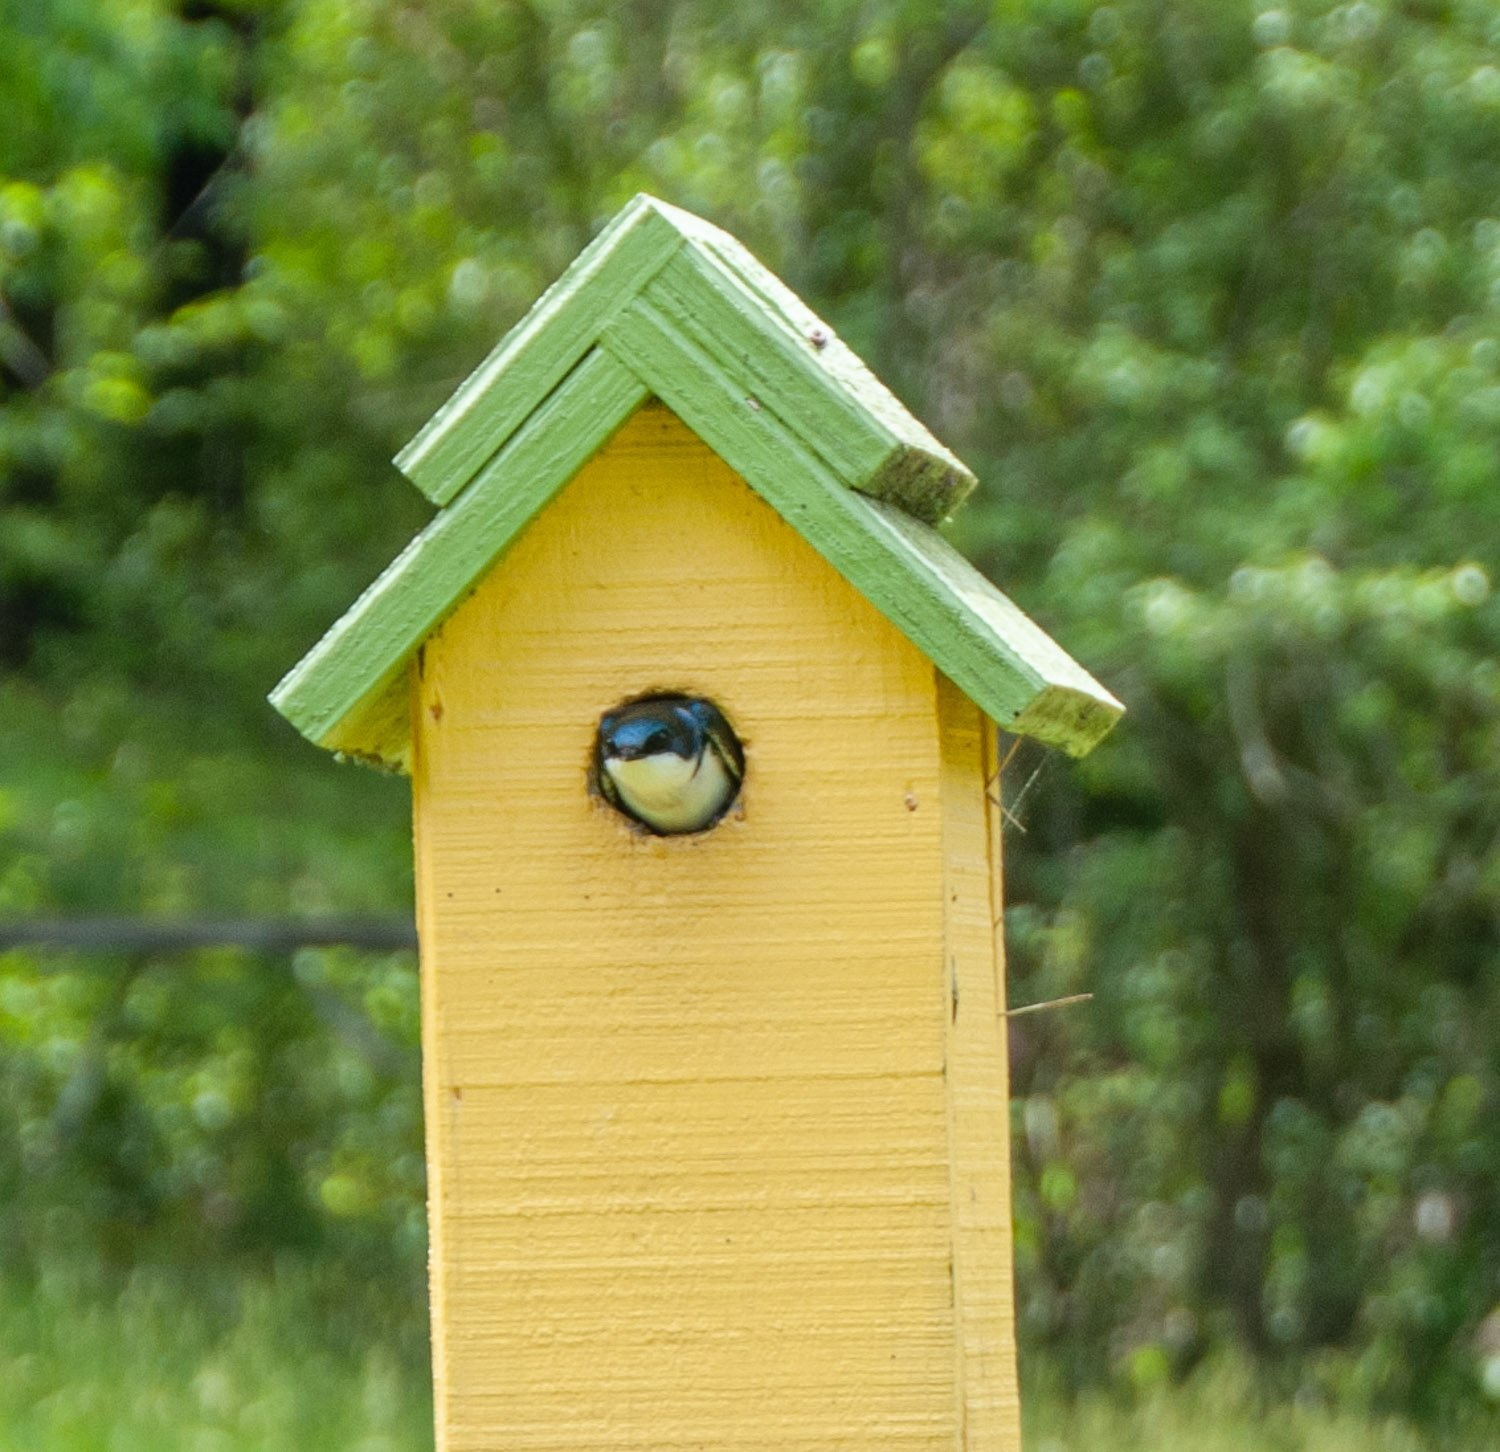 Blue tree swallow sticking its head out of tall yellow birdhouse with mint green roof